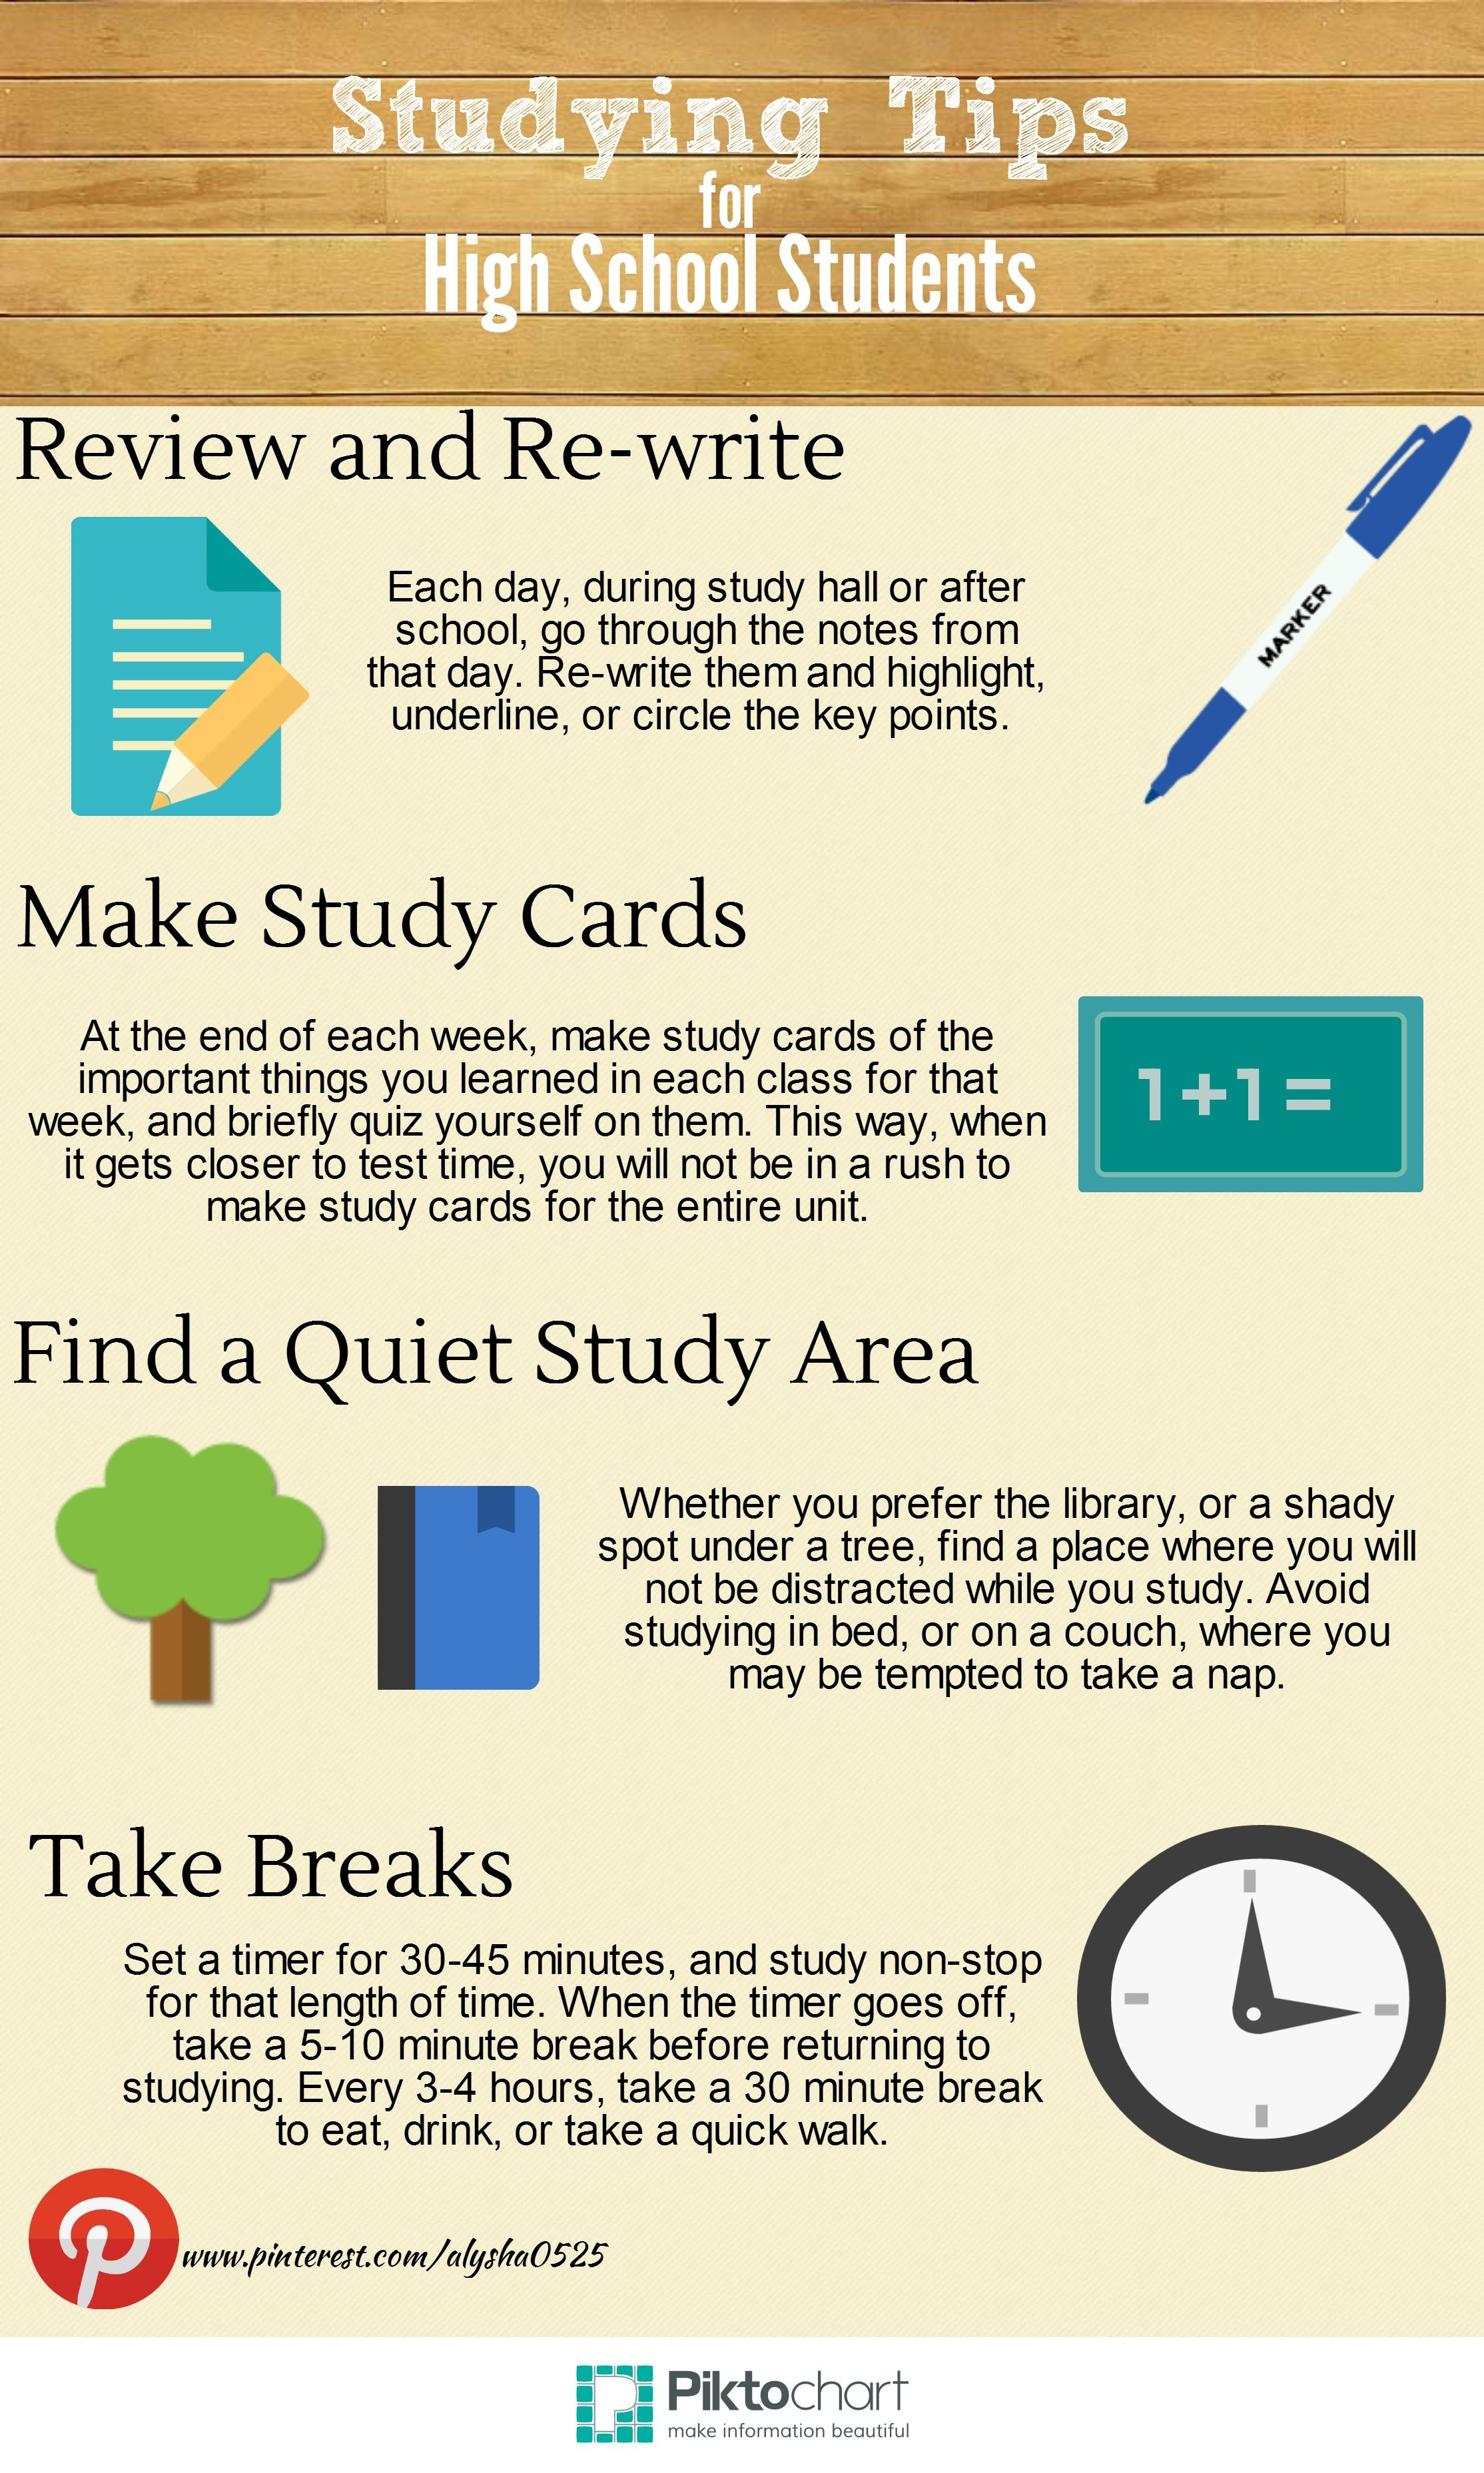 Study Tips For High School Students By Me  Couselling Kids  Study Tips For High School Students By Me